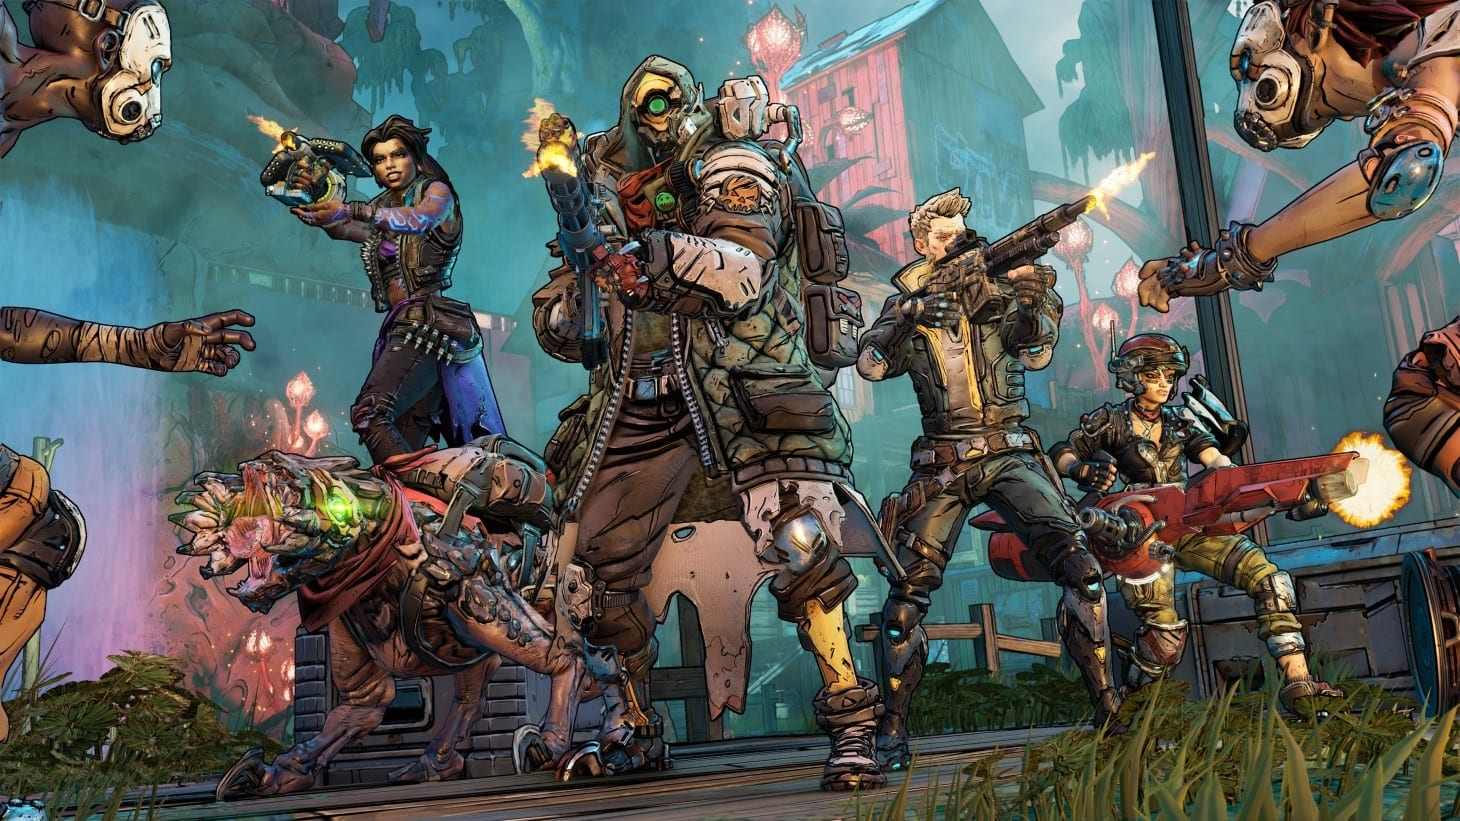 Can You Play Borderlands 3 Offline? Answered